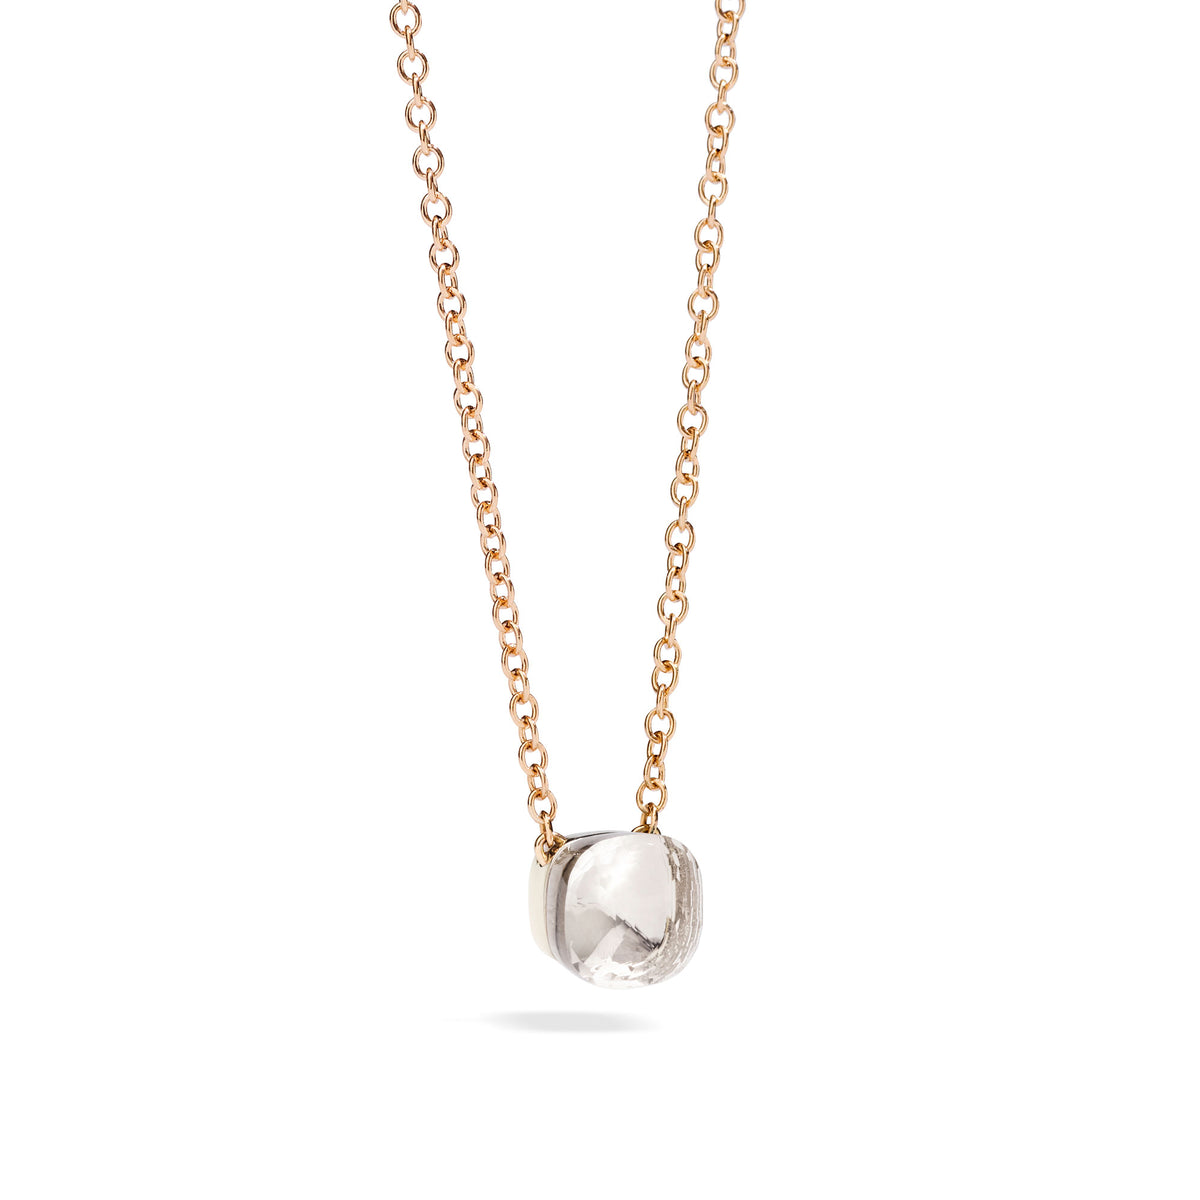 Nudo Necklace with Petit Pendant in 18k Rose and White Gold with White Topaz